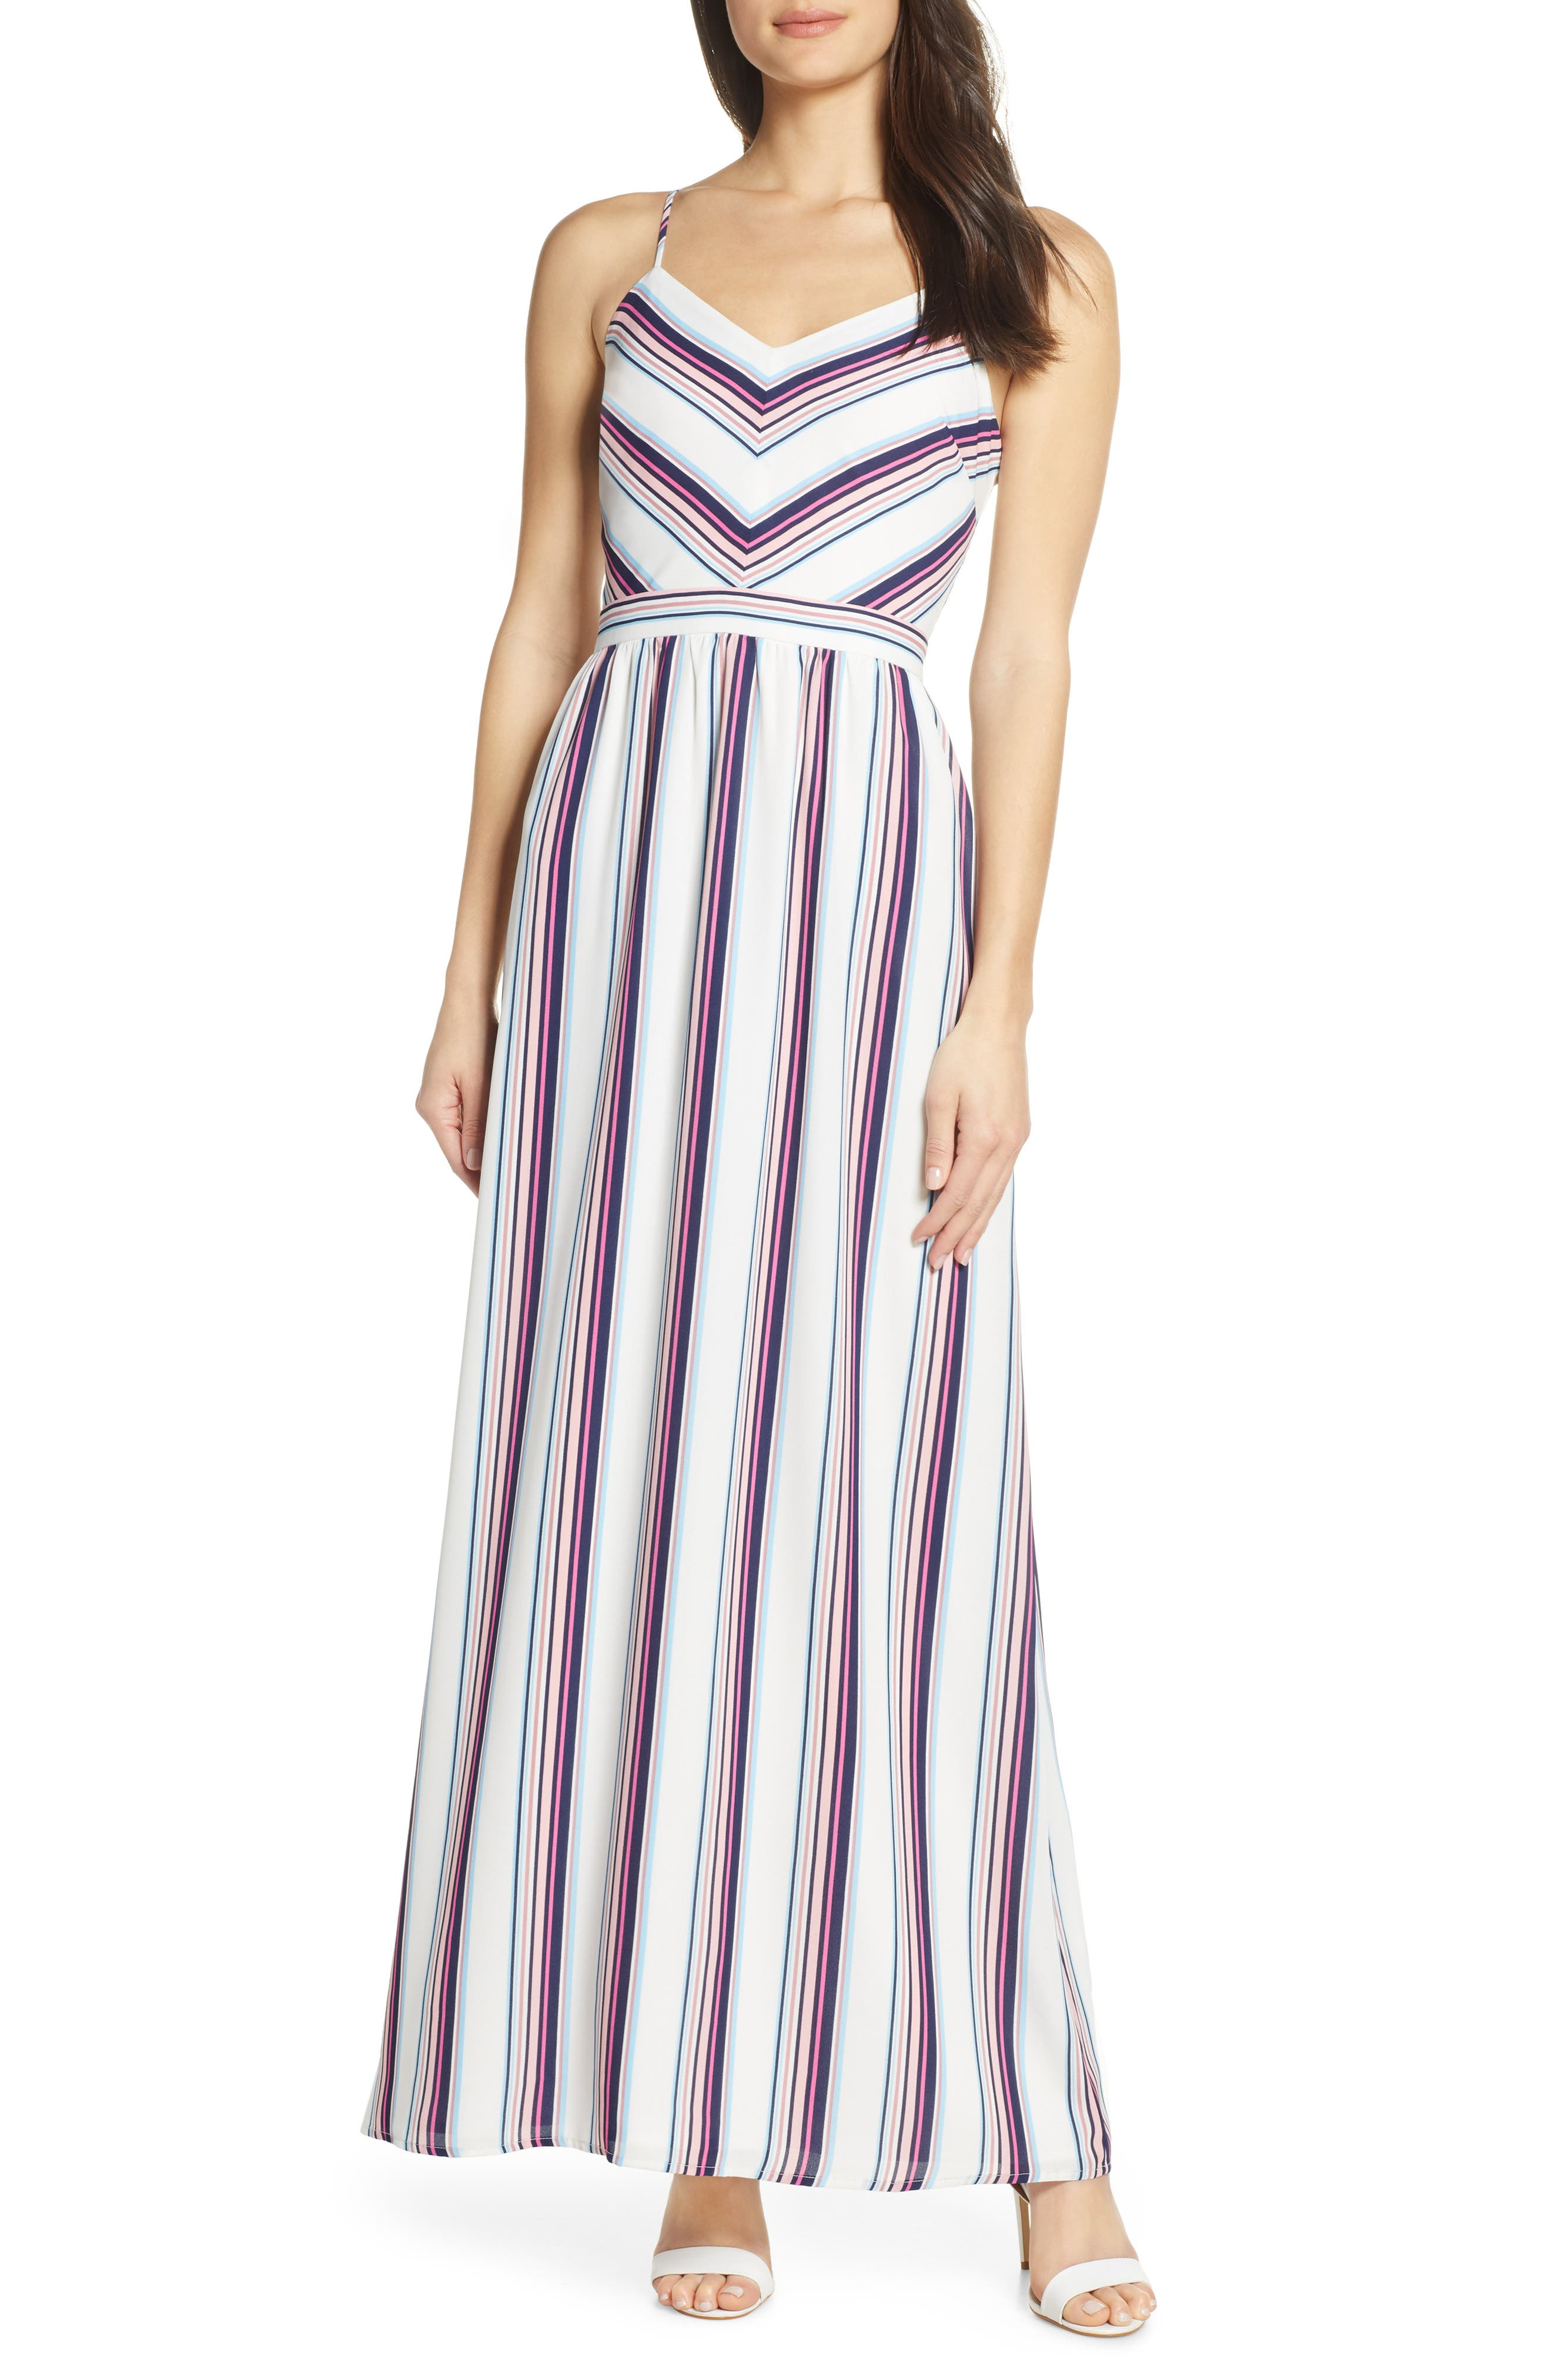 CHARLES HENRY Cami Maxi Dress, Main, color, WHITE-NAVY STRIPE